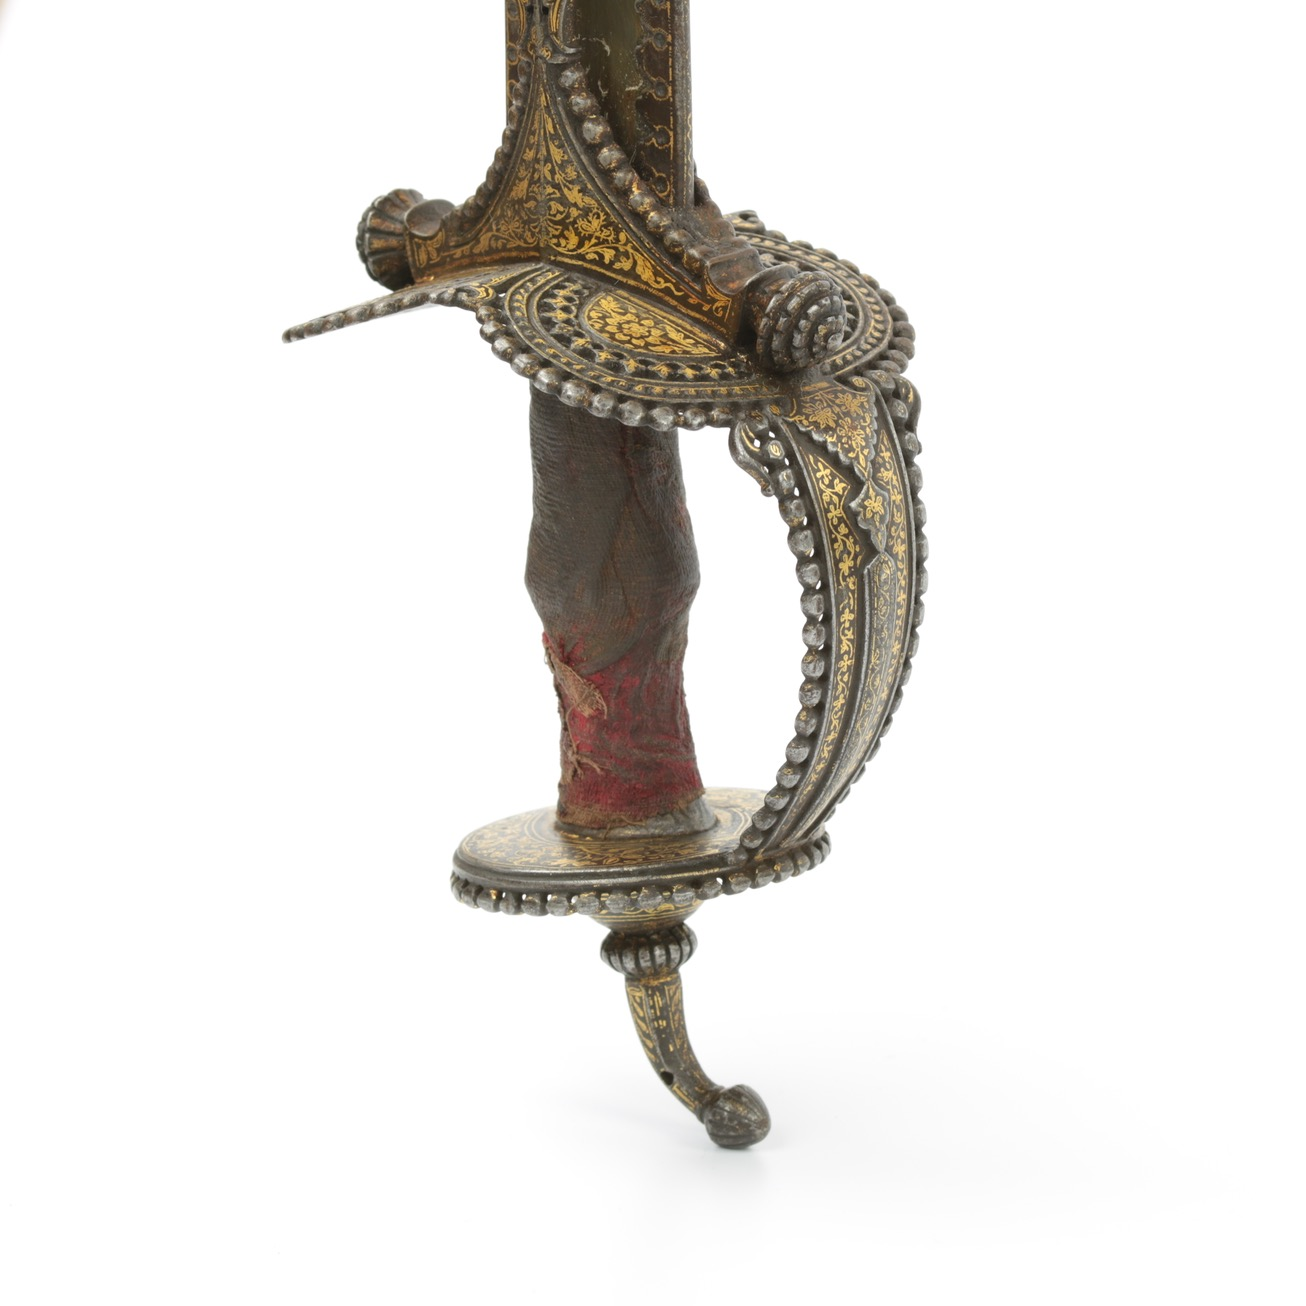 Indian Khanda sword with exceptionally fine hilt with pierced work, beaded rims and golden decoration